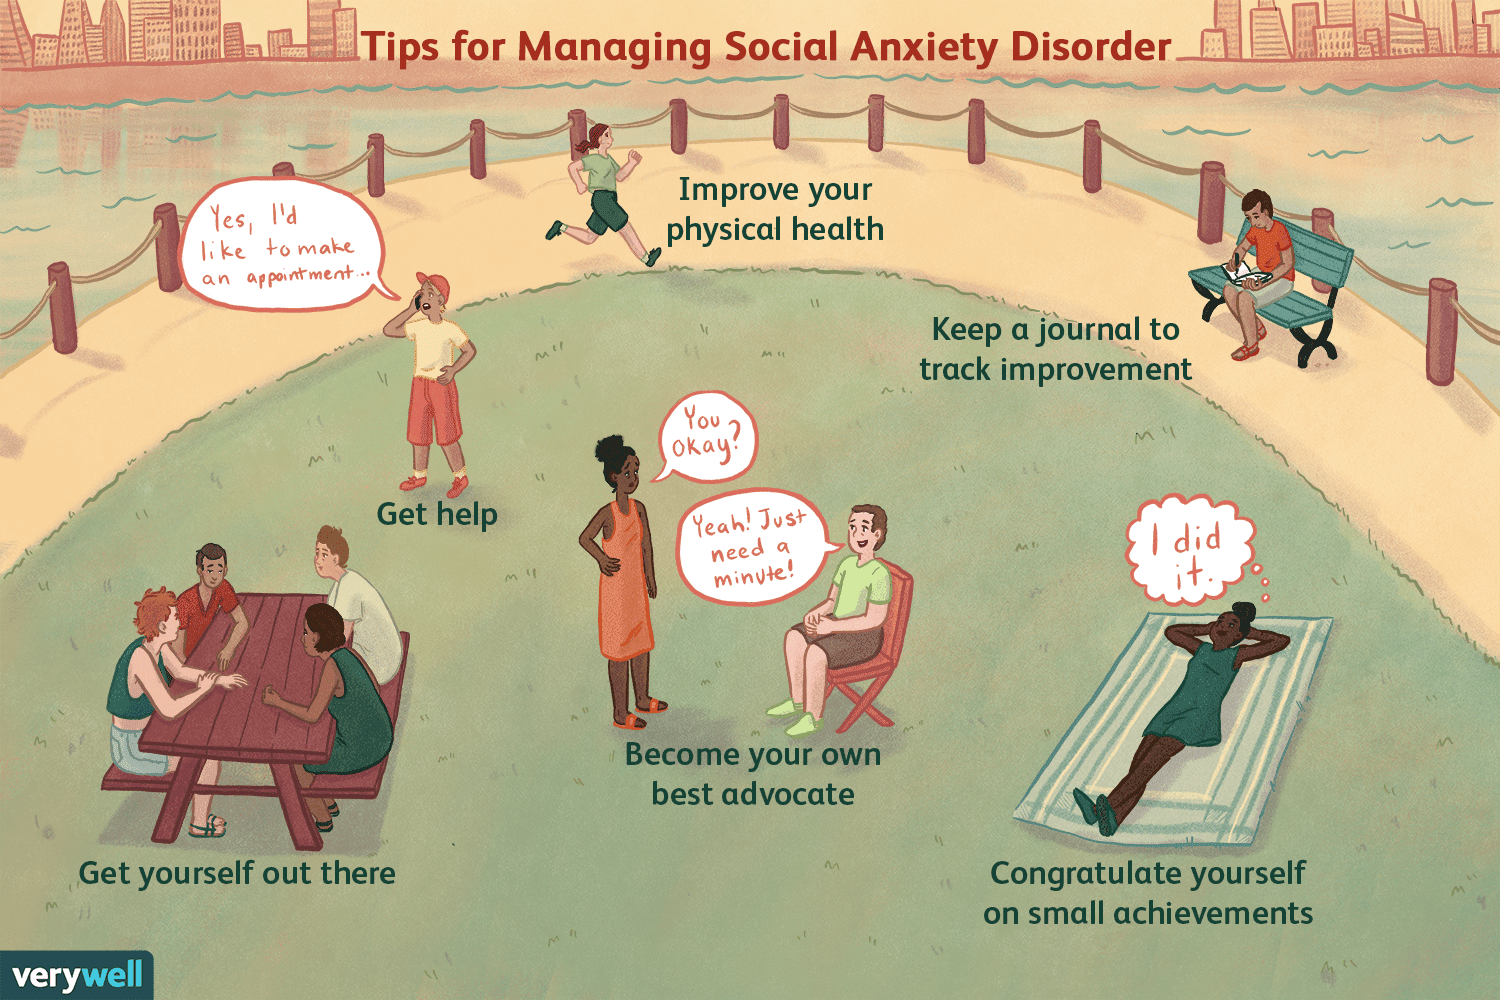 social anxiety disorder tips 51f10c d284f8c06cd3fb1c39